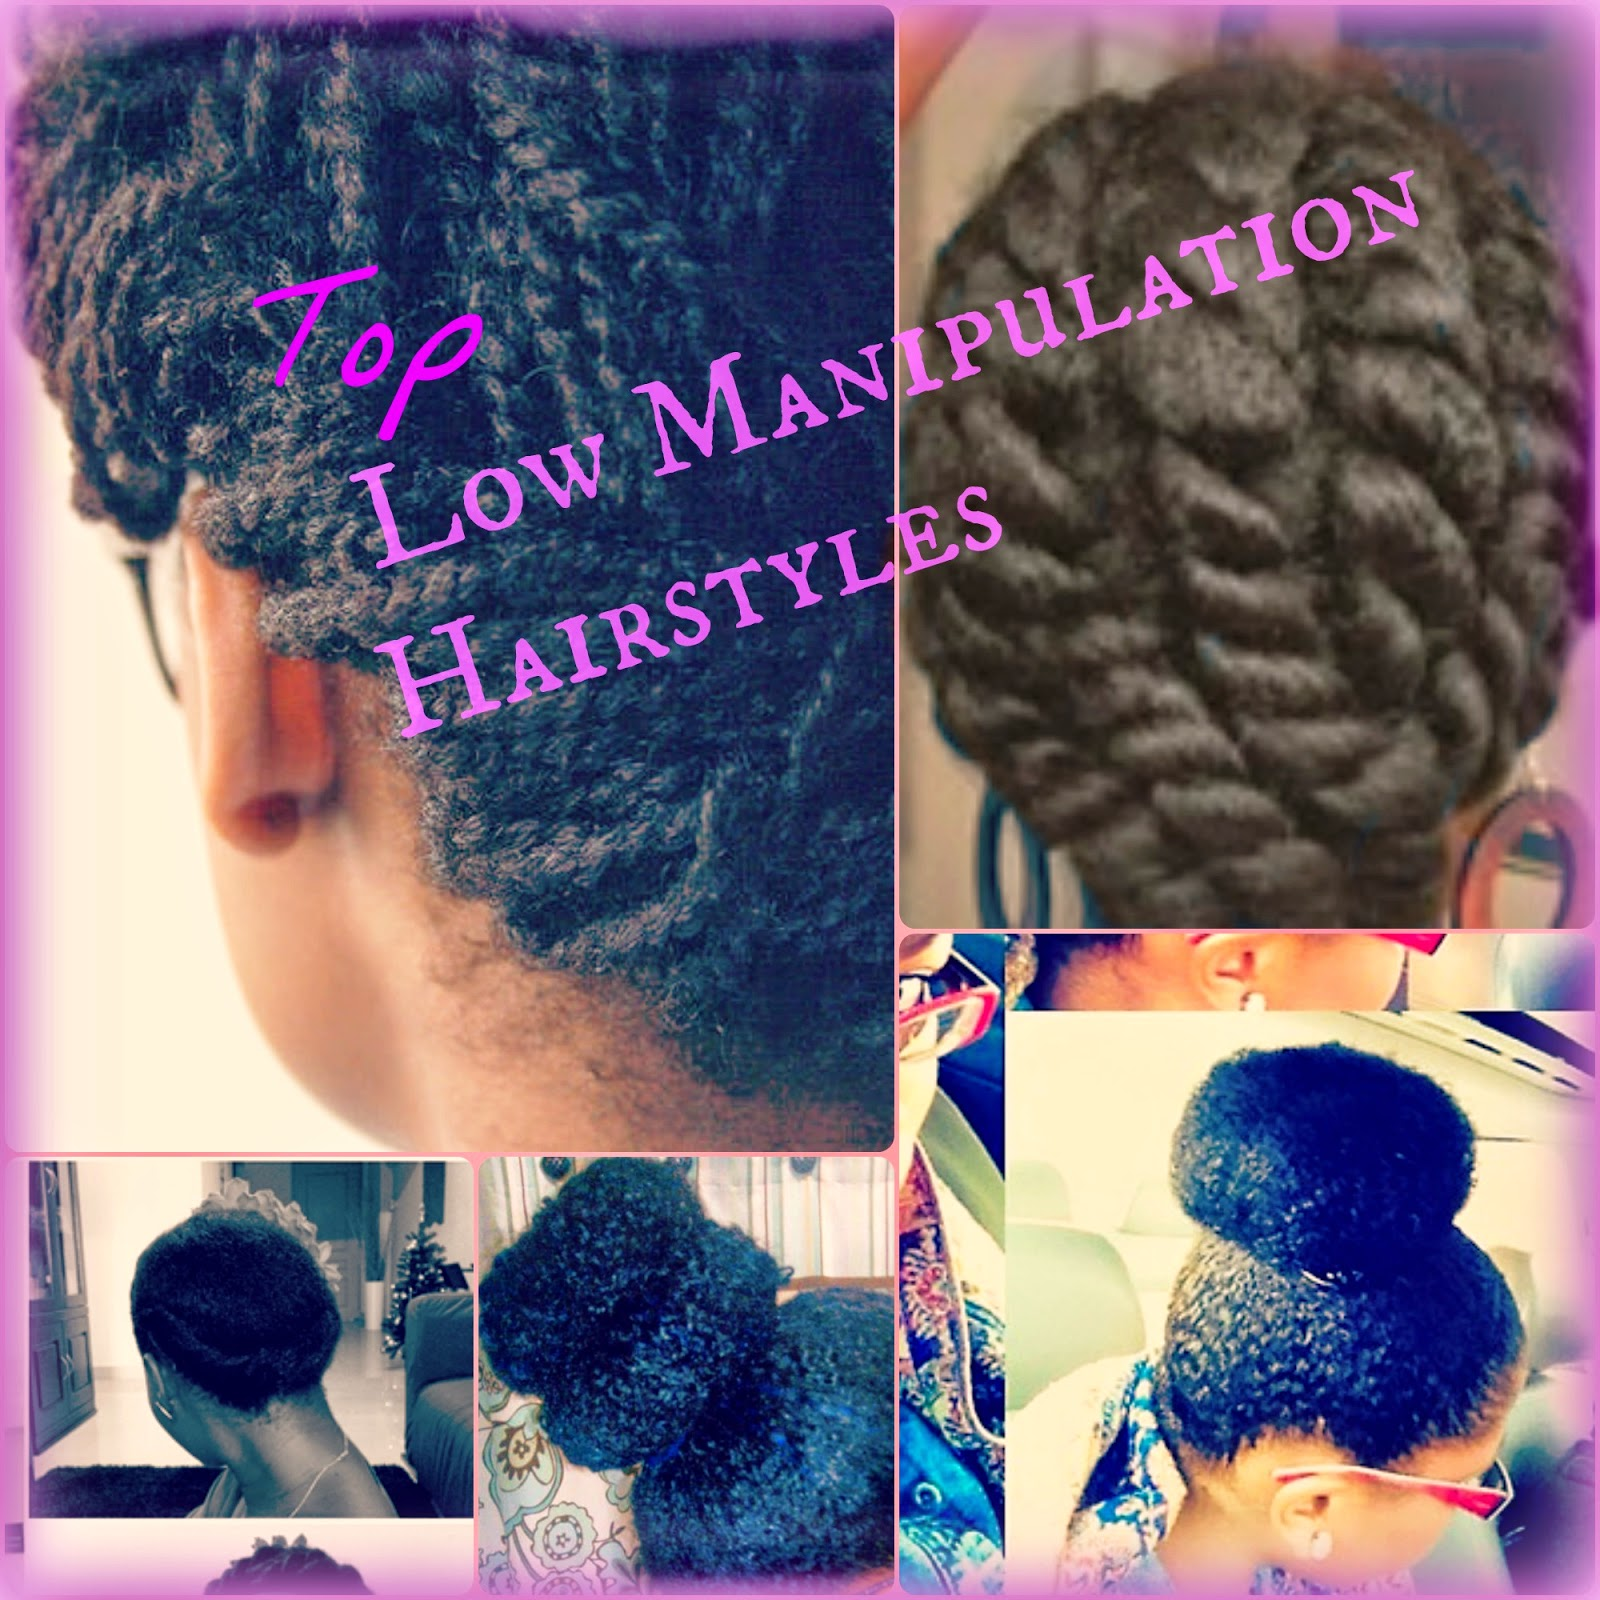 hair low manipulation styles indigenouscurls low manipulation hairstyles 5332